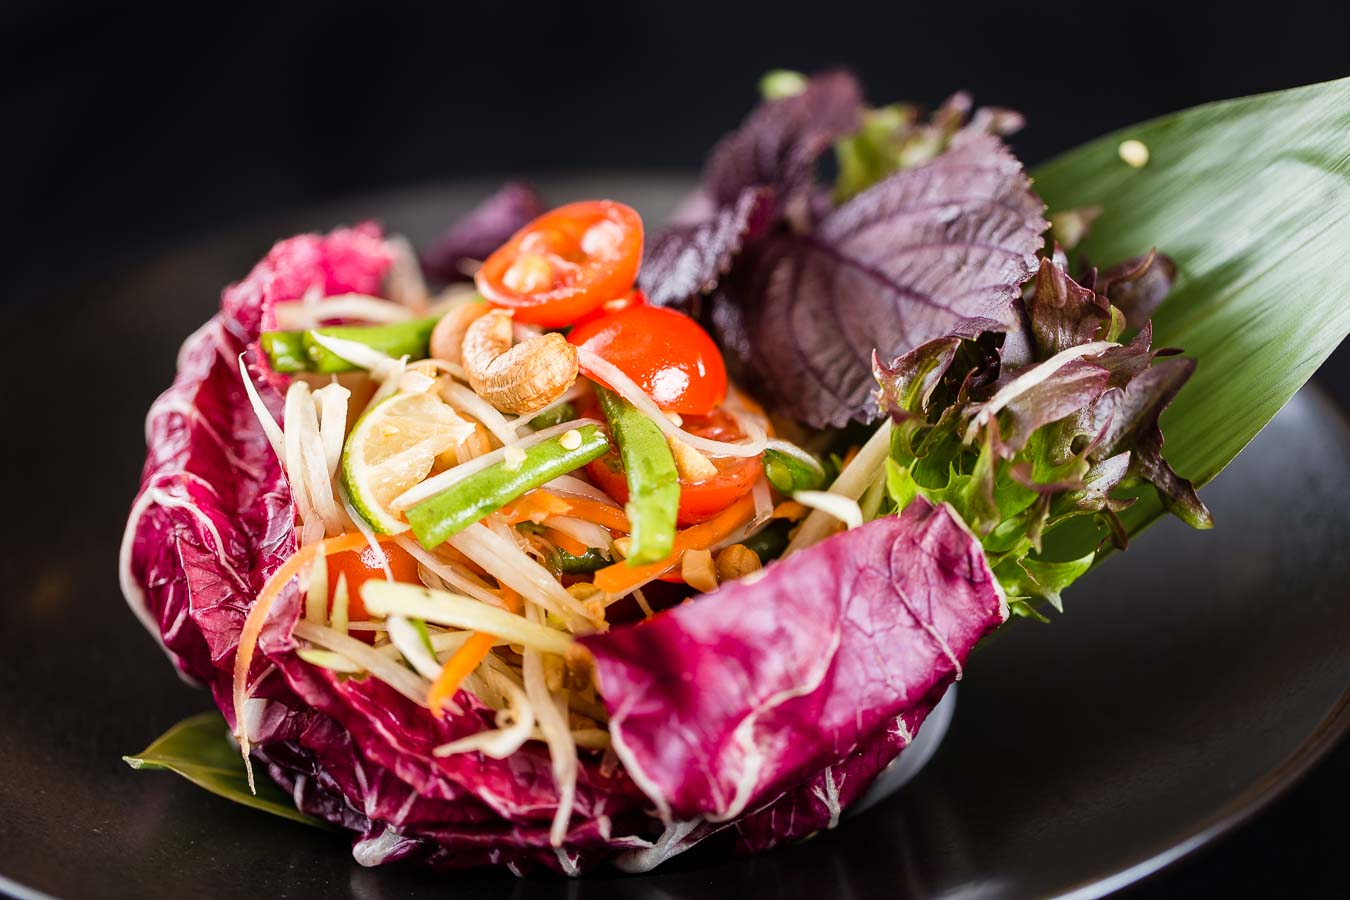 A dramatic photo of a Thai salad of cashews, tomato, green beans, sliced cabbage nestled in a large red cabbage leaf which sits on a black plate